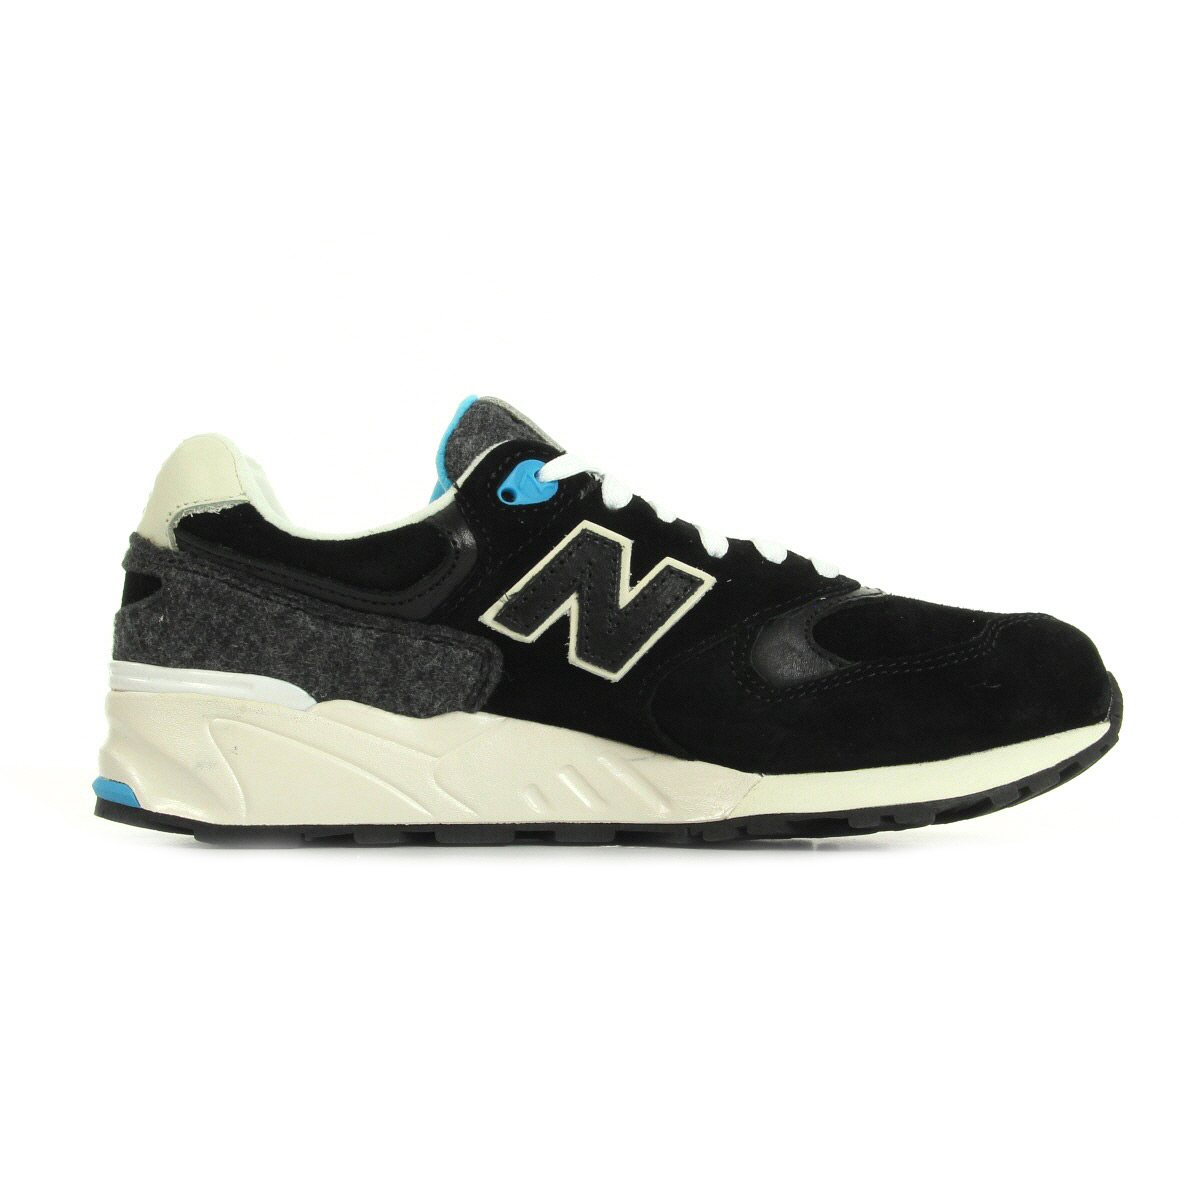 new balance wl 999 mma wl999mma chaussures homme homme. Black Bedroom Furniture Sets. Home Design Ideas